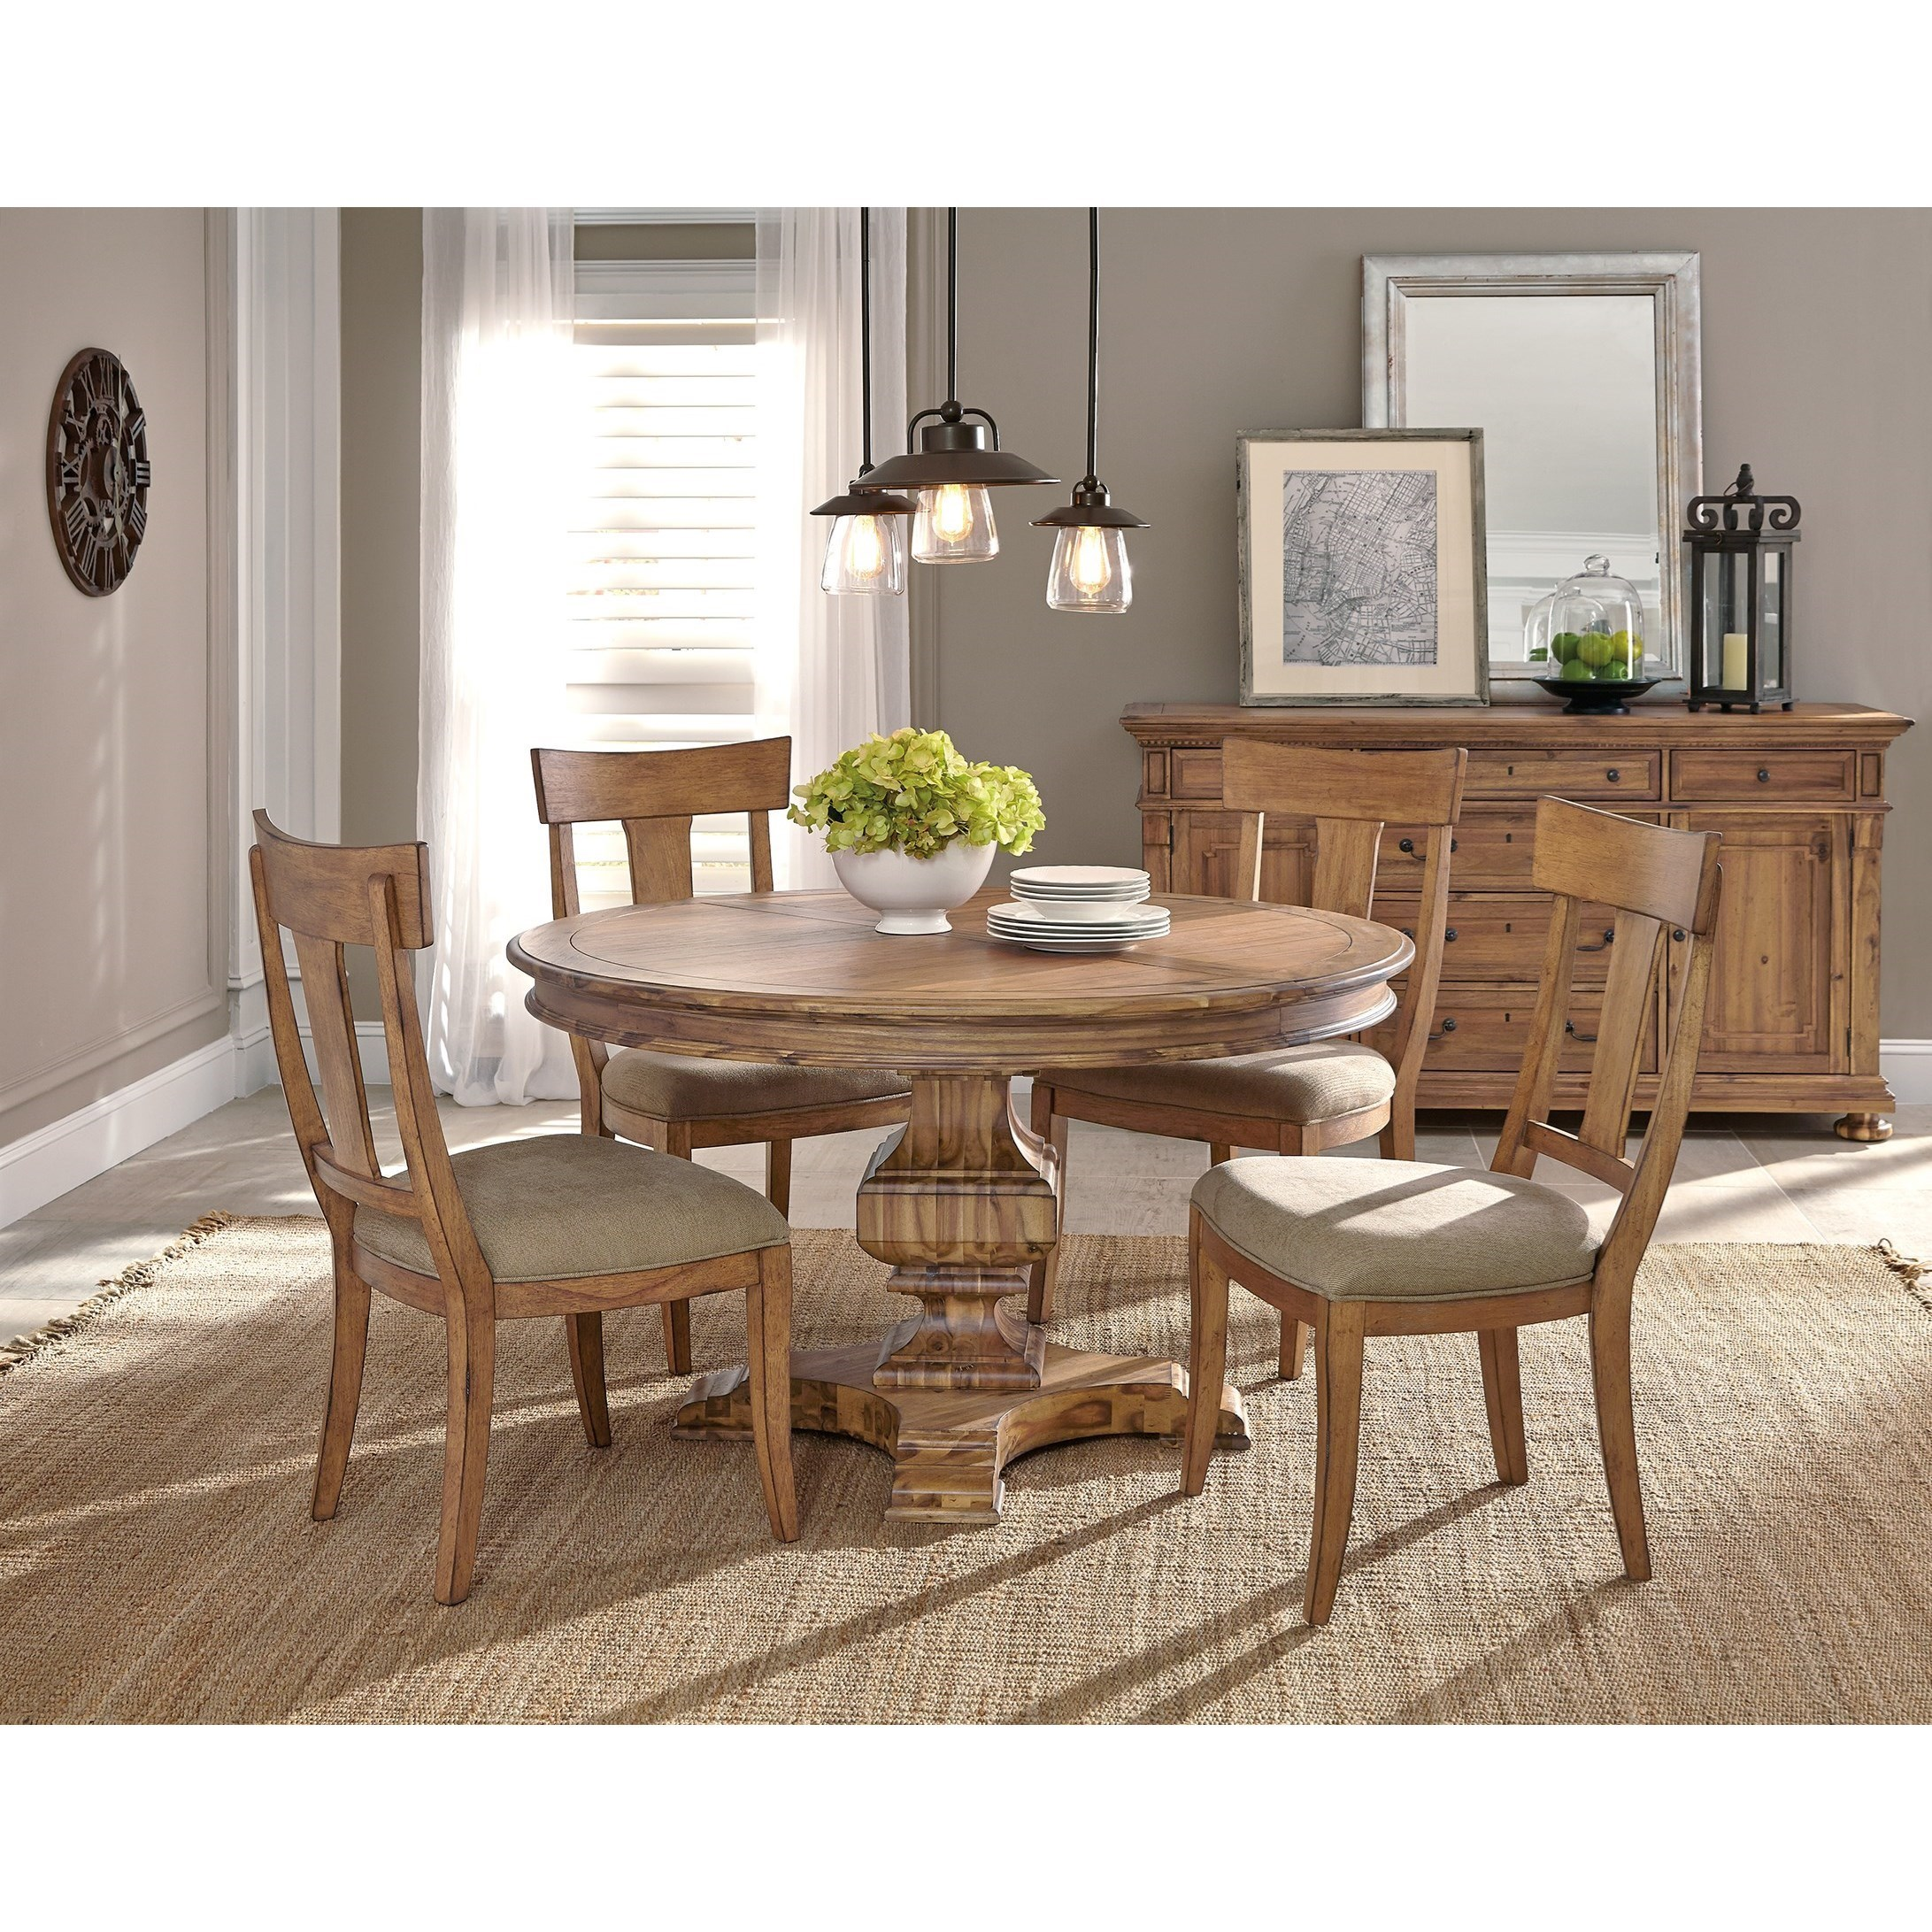 Hekman Wellington Hall Casual Round Dining Room Group   Jacksonville  Furniture Mart   Casual Dining Room Groups